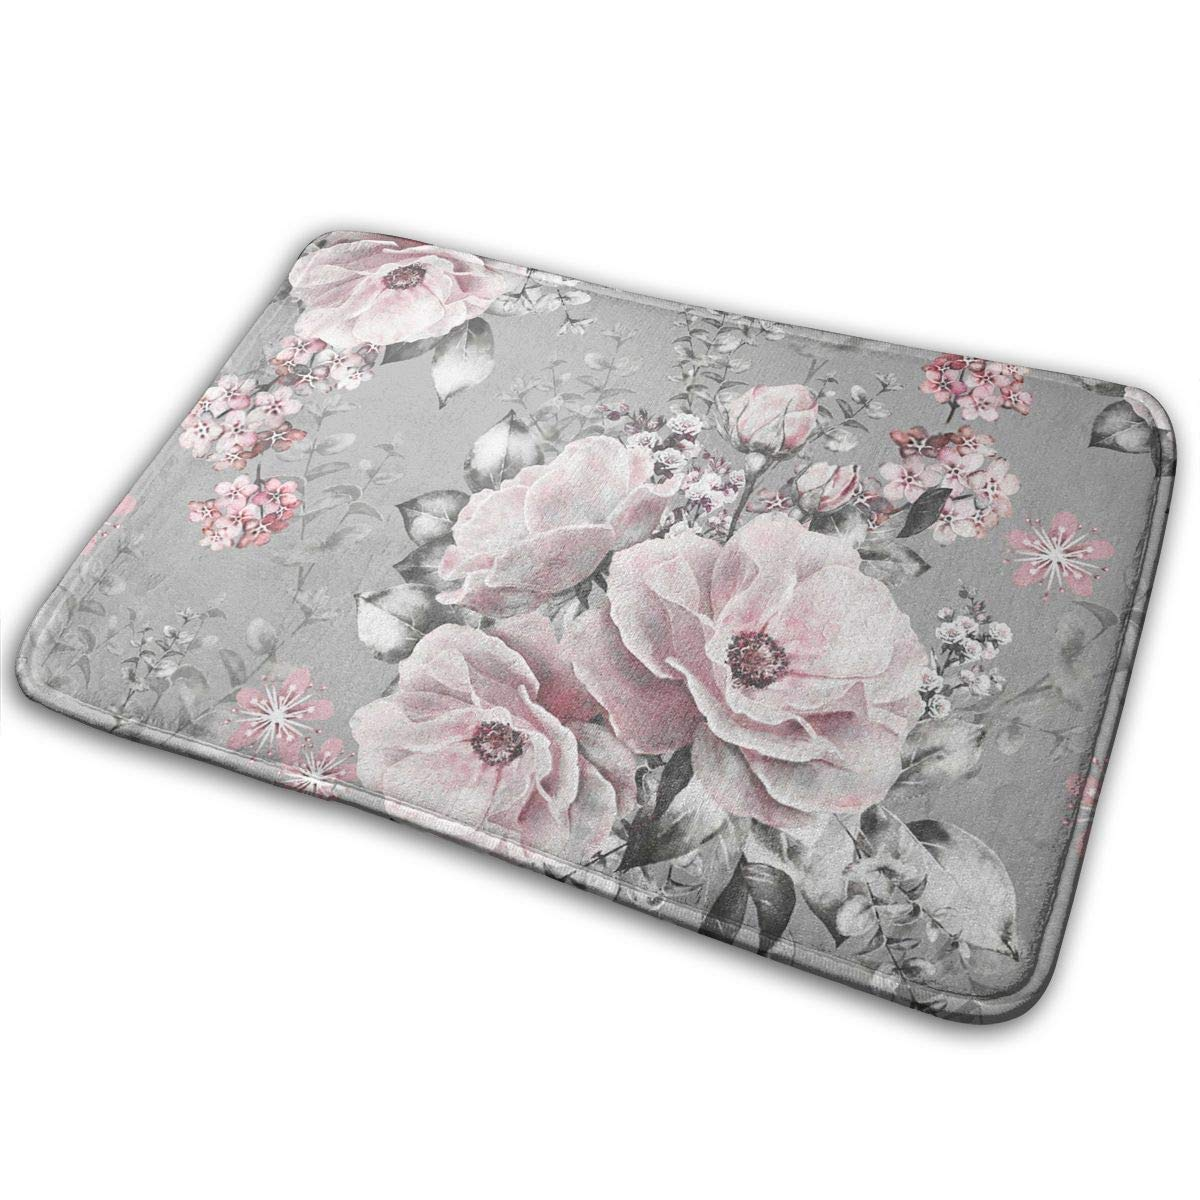 L W Inch Pink Flowers and Leaves Gray,Anti Slip Machine Washable Door Mat Bathroom Kitchen Rug Bathroom Mats Thicken Playmat Multi-Purpose Floorcover 31.5 X 19.7